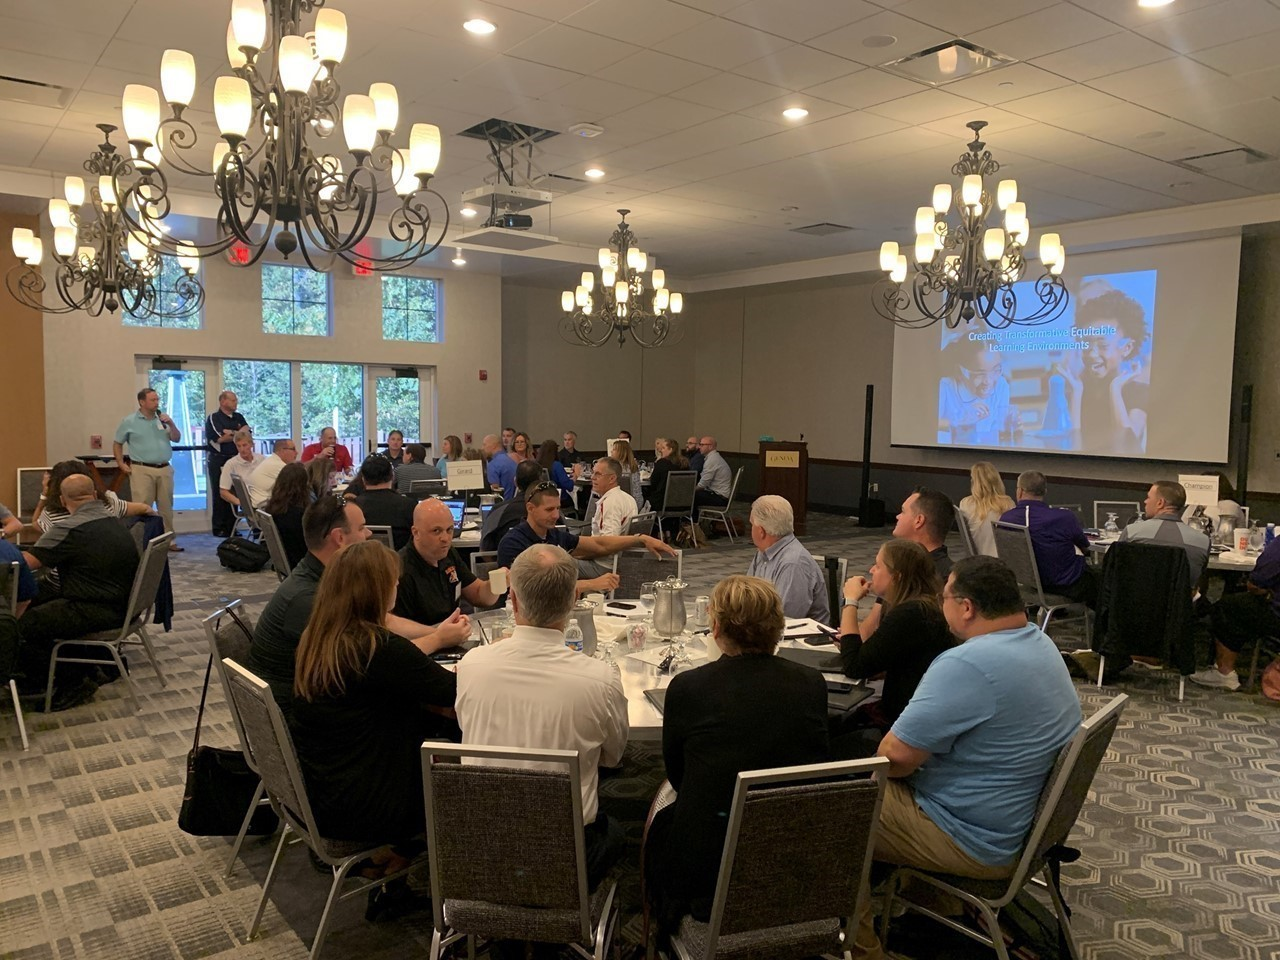 TCESC Superintendent Michael Hanshaw, standing at right, welcomes s Trumbull County Administrators to the TCESC-hosted 2021 Conference. Bristol Superintendent Chris Dray, standing at left, introduces his administrators.